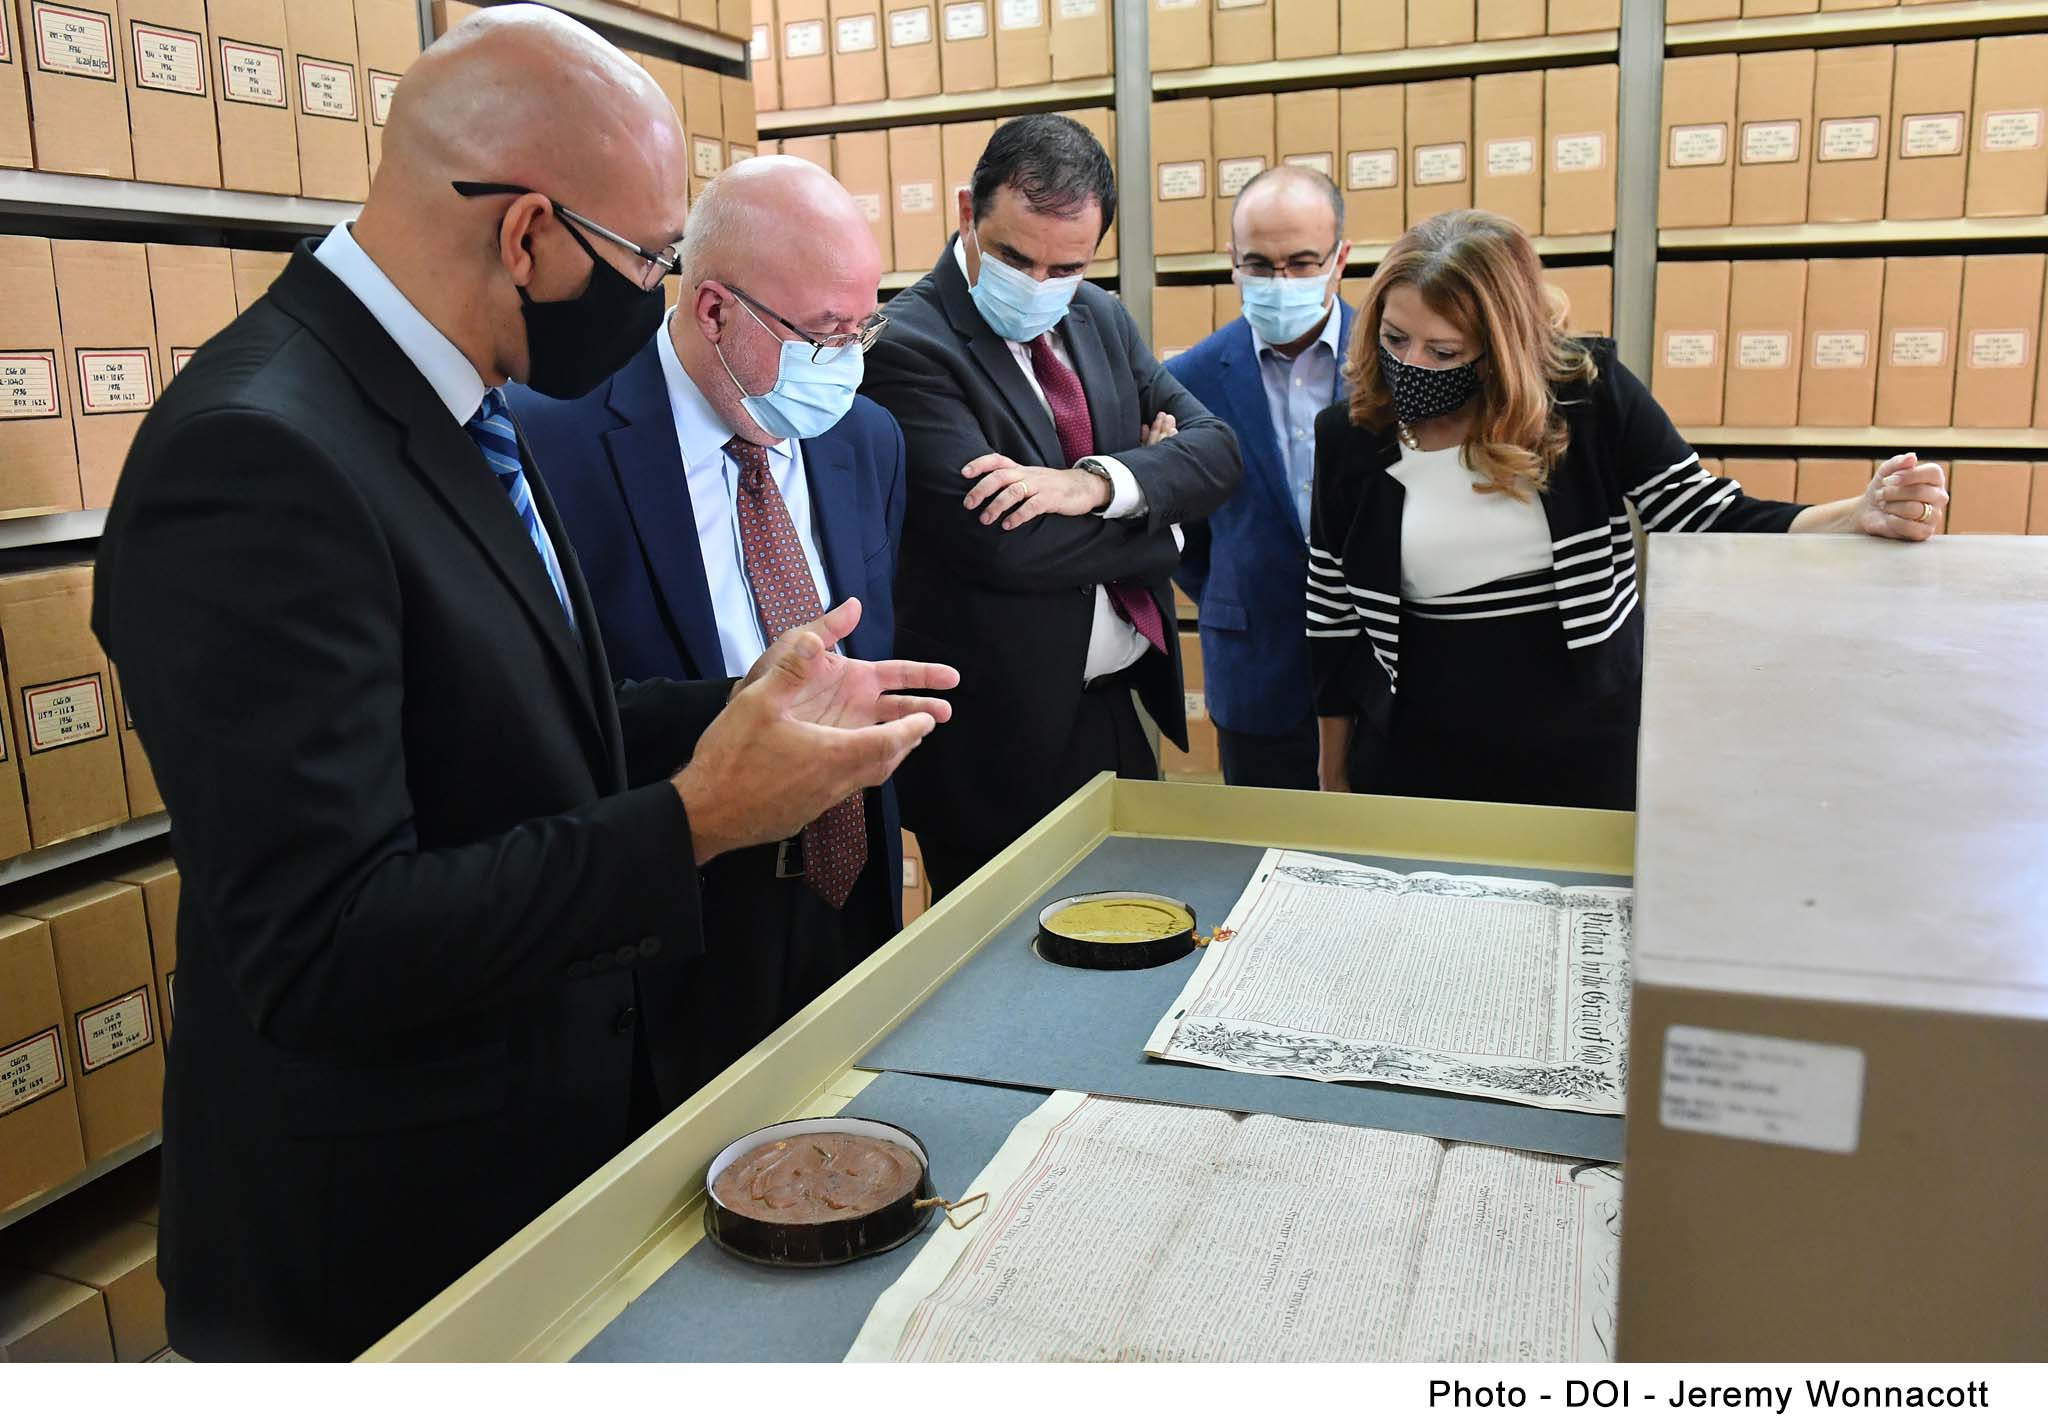 Technological investment in Customs and National Archives is paying off